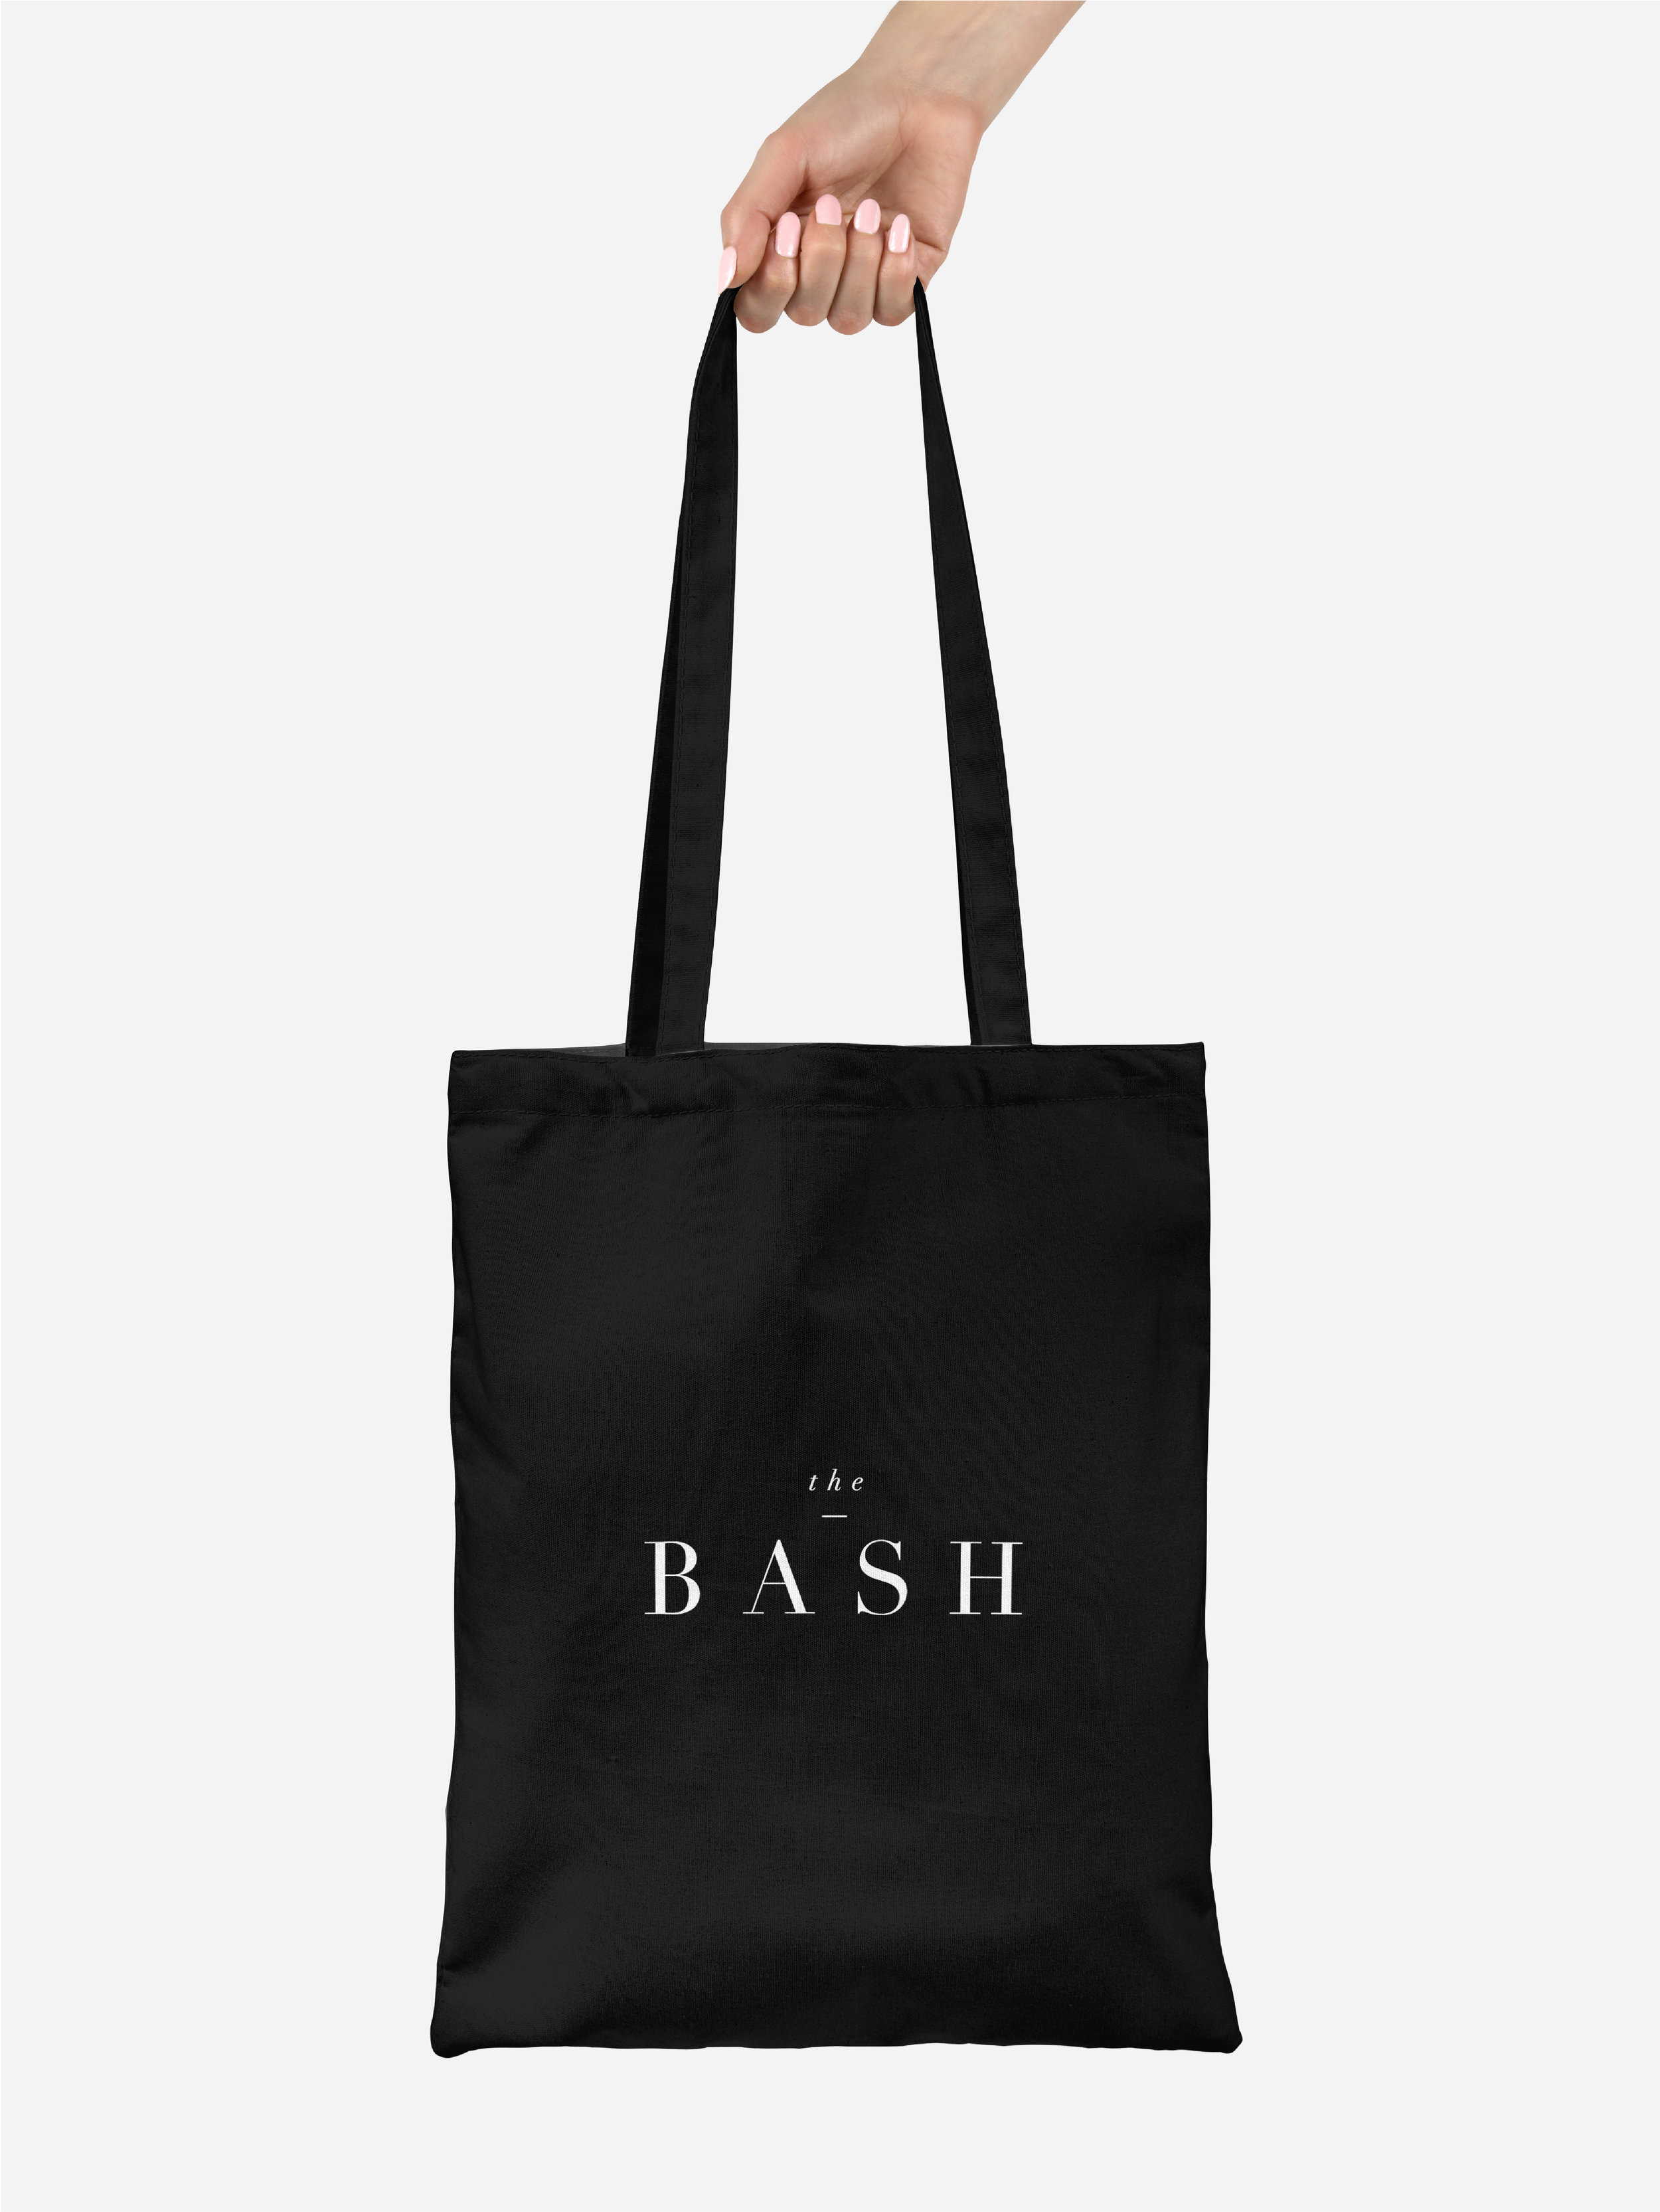 the-bash-calgary-wedding-event-swell-yyc-graphic-design-05.jpg